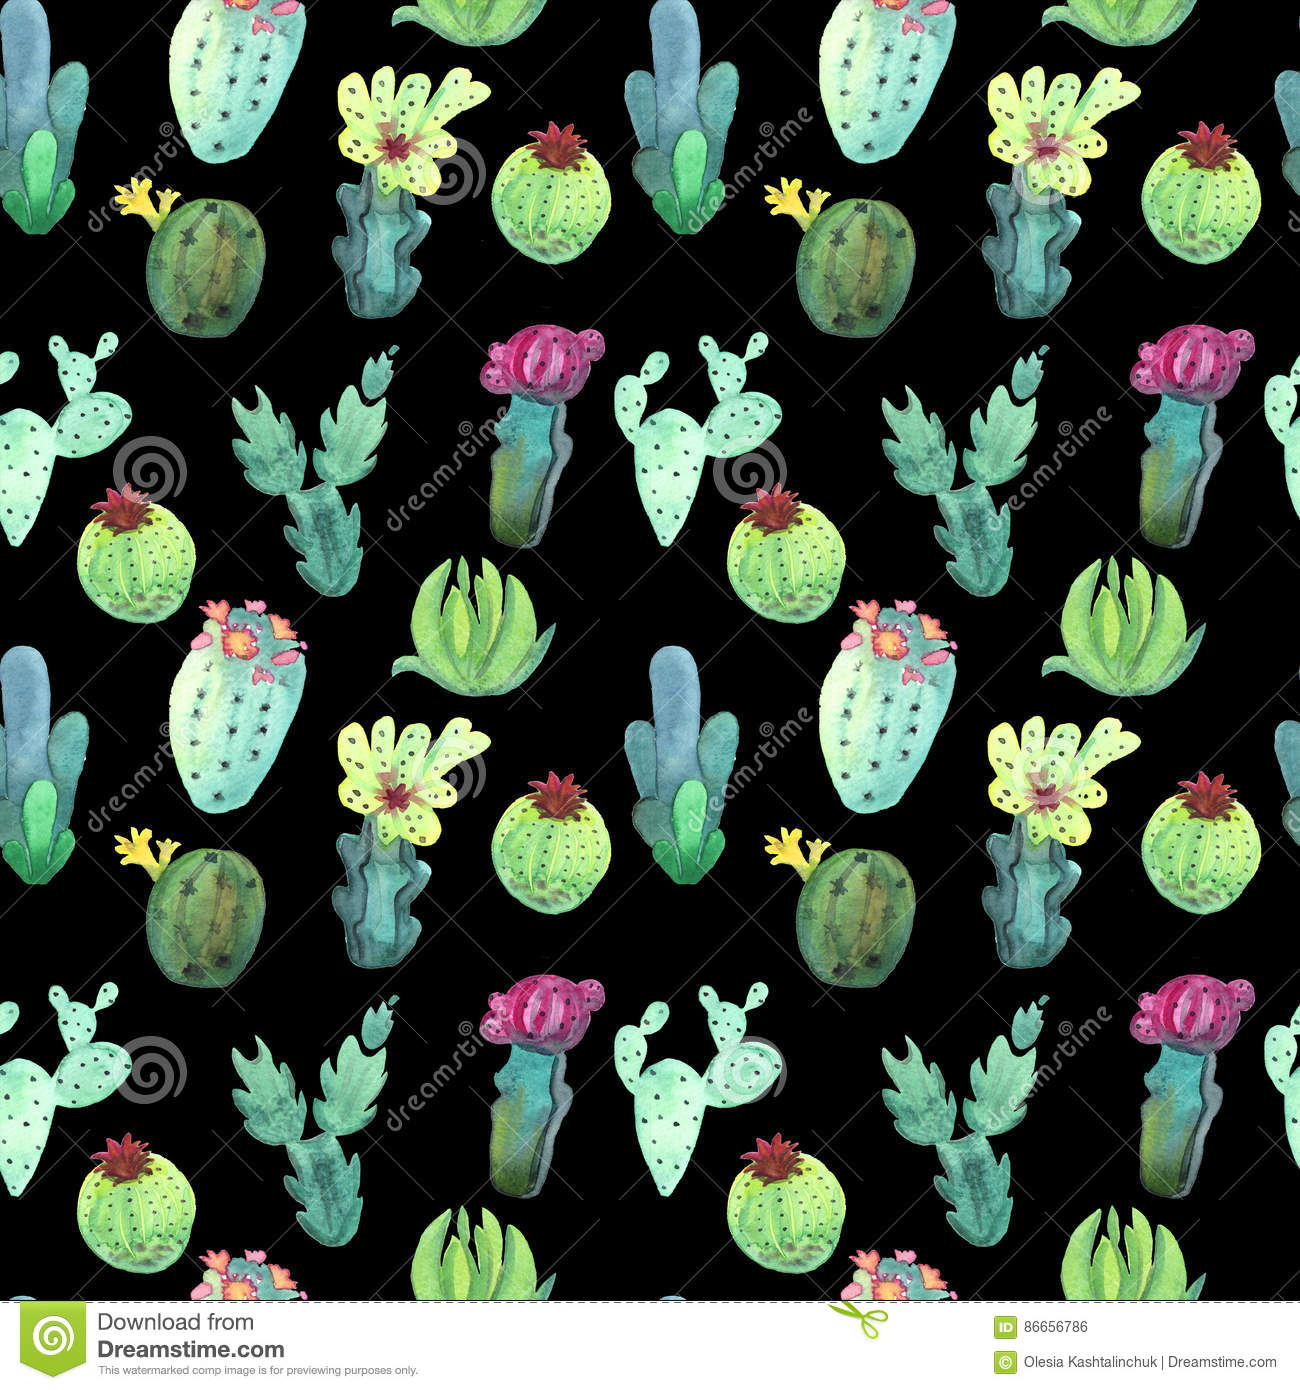 watercolor cactus seamless pattern colorful vibrant